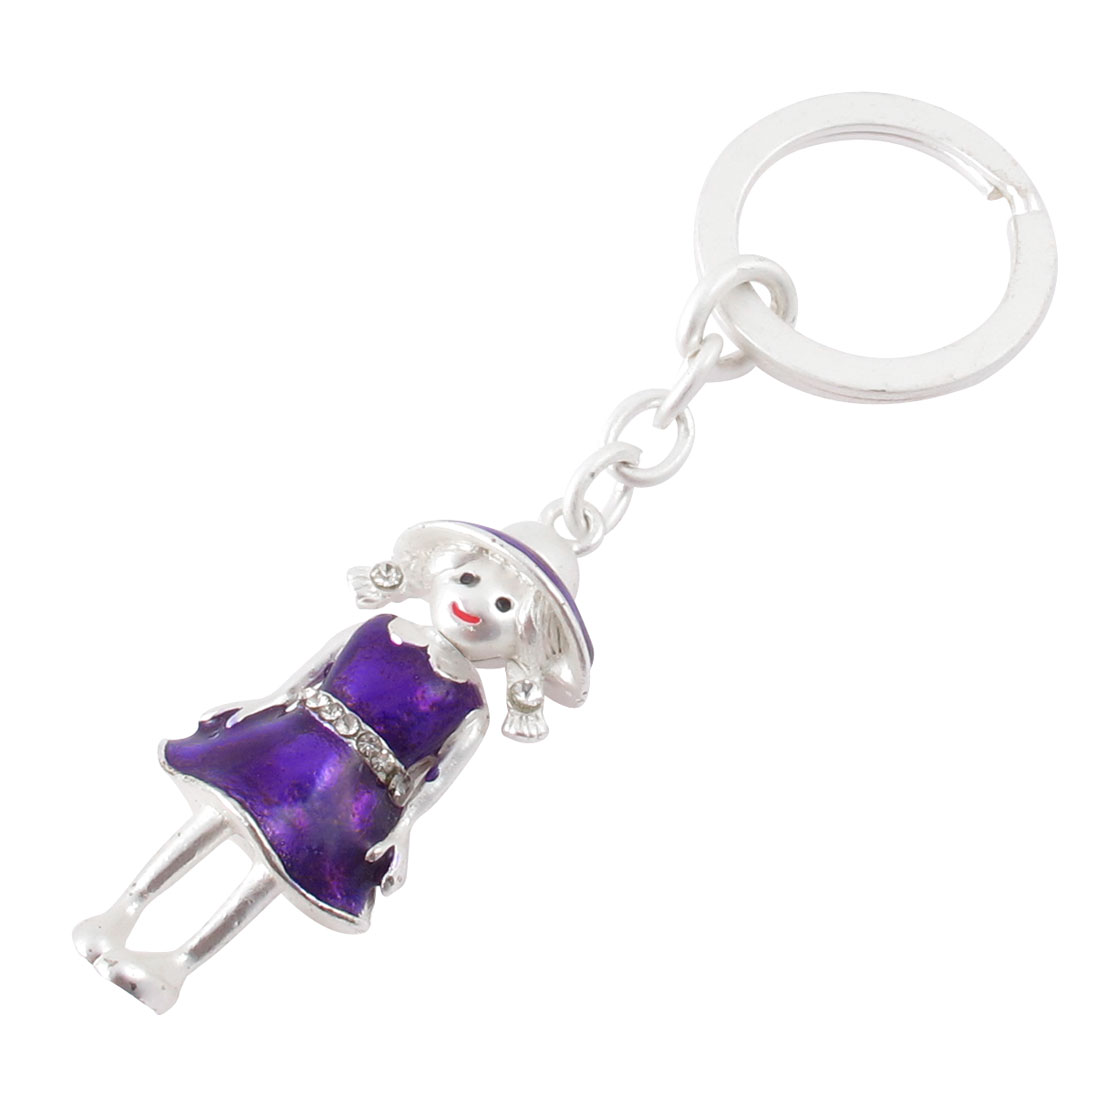 Metal Dual Sides Girl Doll Pendant Keychain Keyring Purple Silver Tone